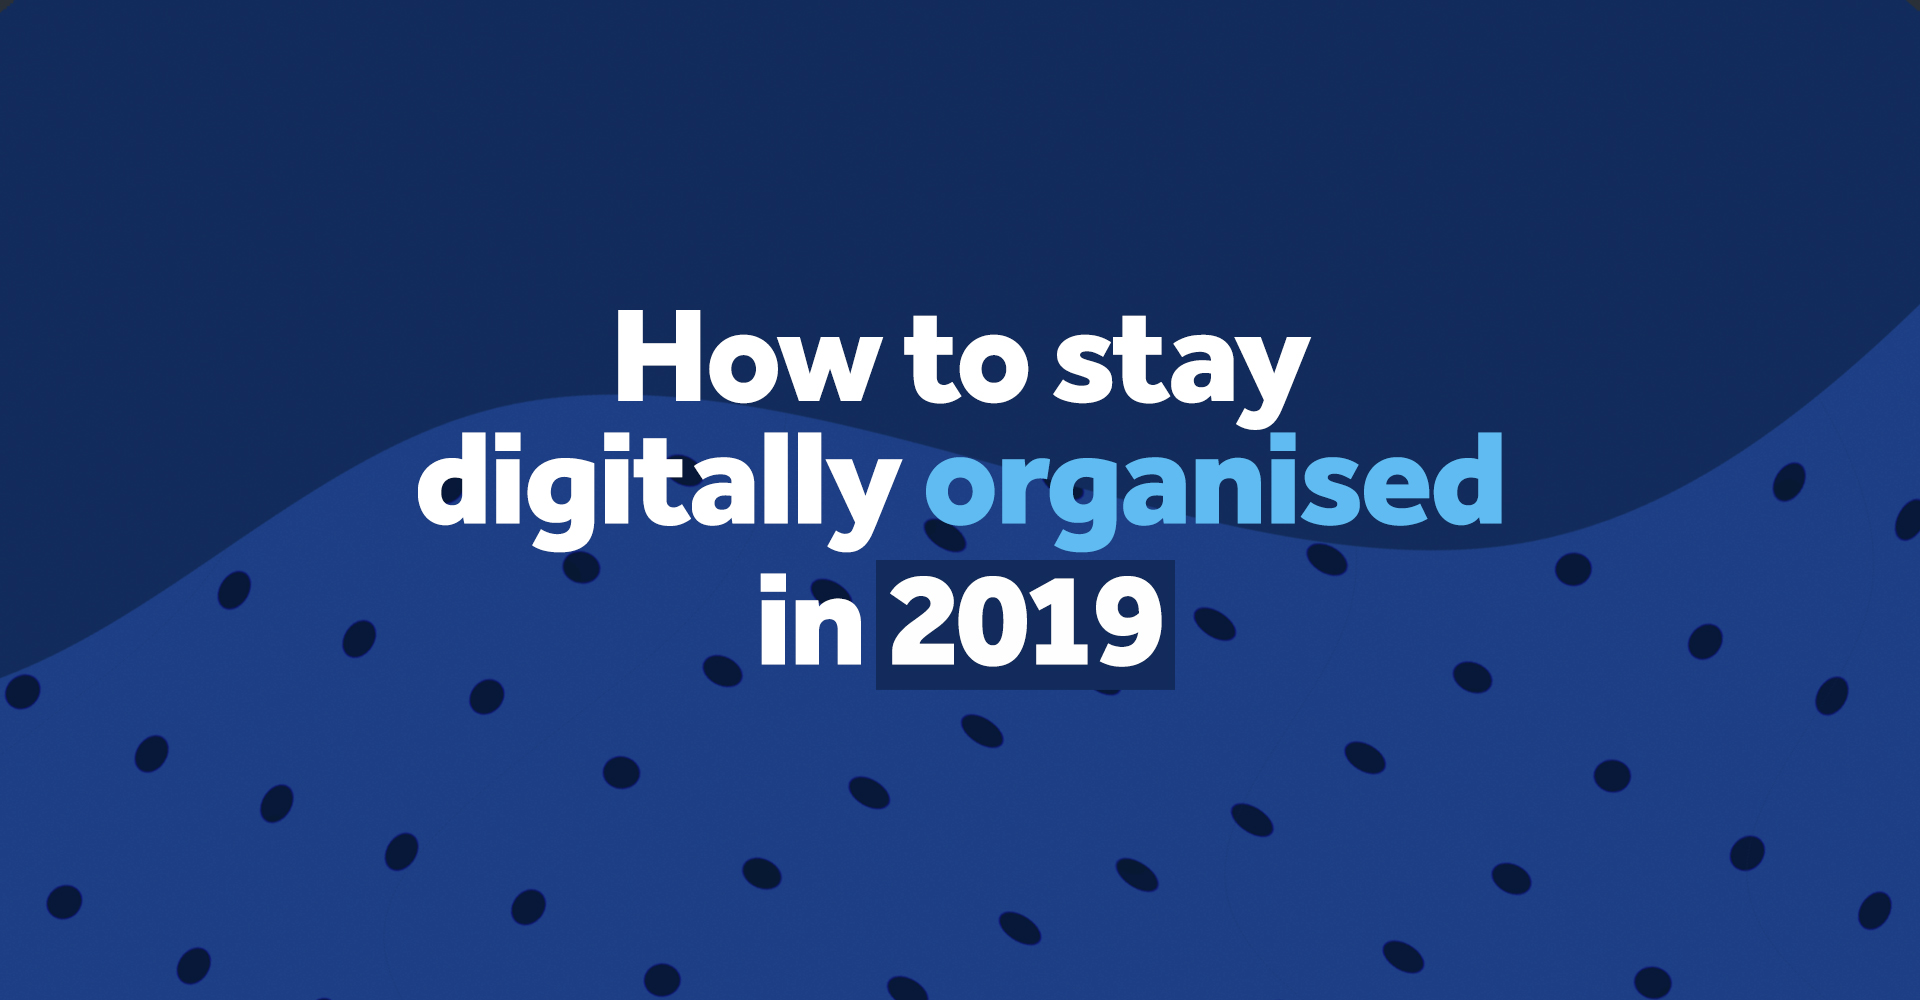 how to stay digitally organised in 2019